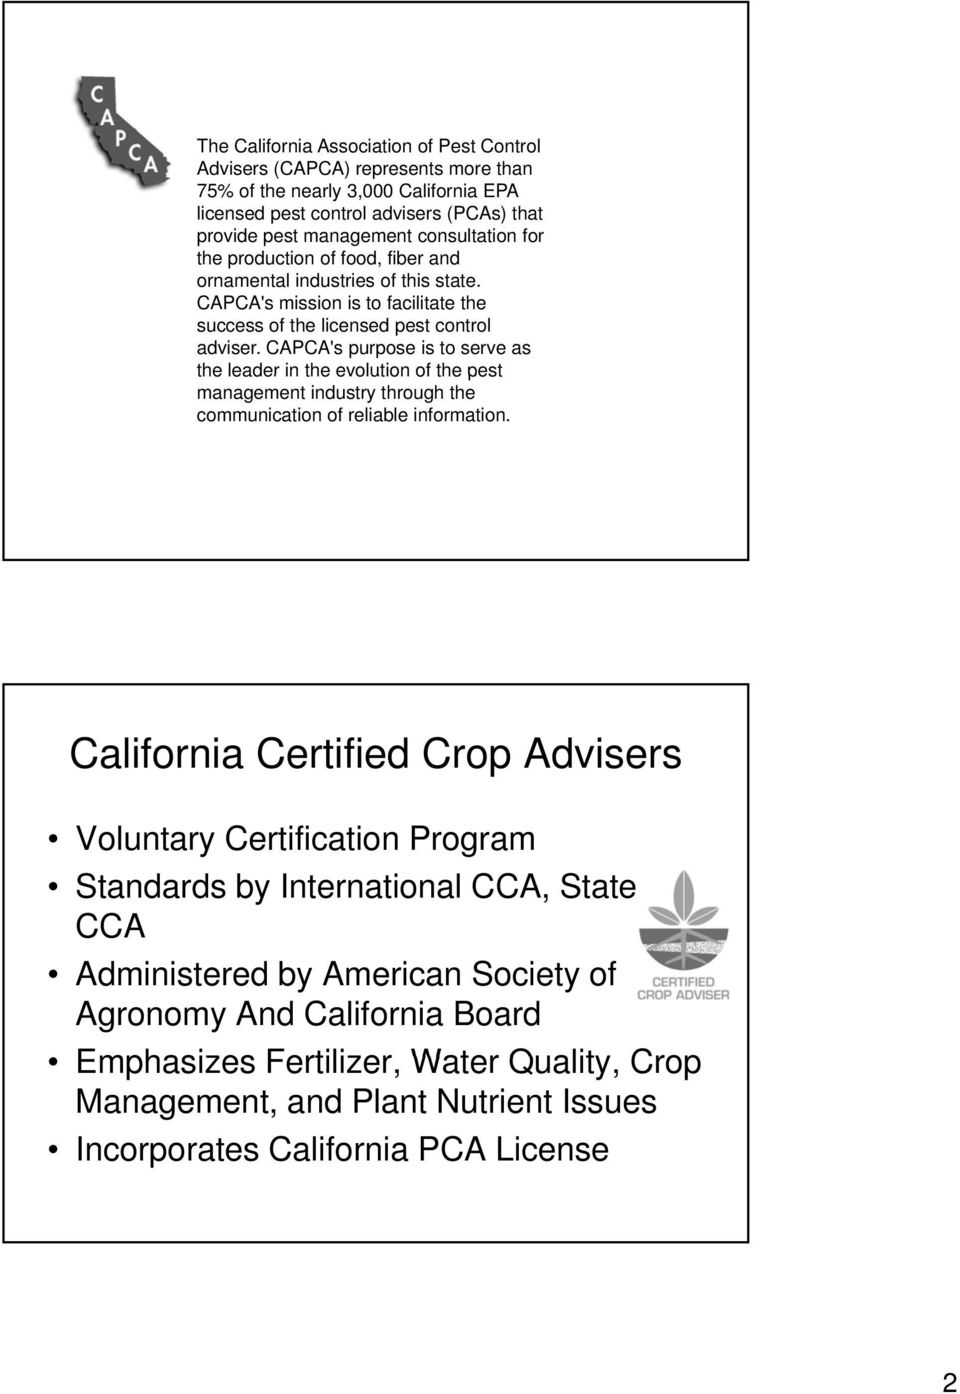 Overview Of The Pcacca Role In Providing Nutrient And Pest Control